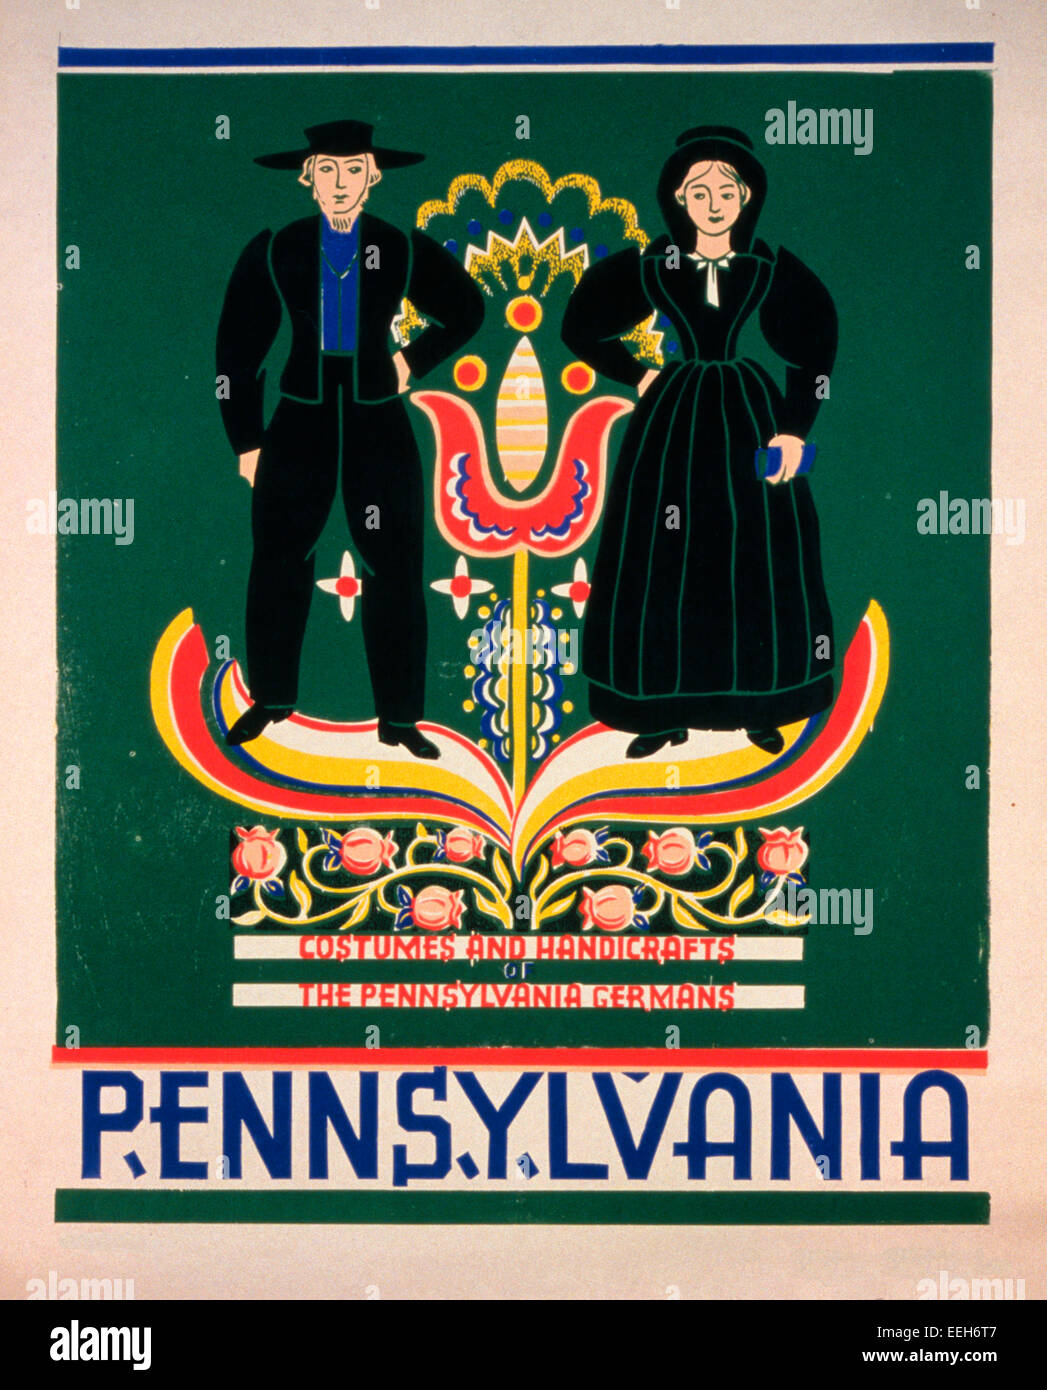 Pennsylvania Costumes and handicrafts, the Pennsylvania Germans - Poster promoting Lancaster County, Pennsylvania, - Stock Image